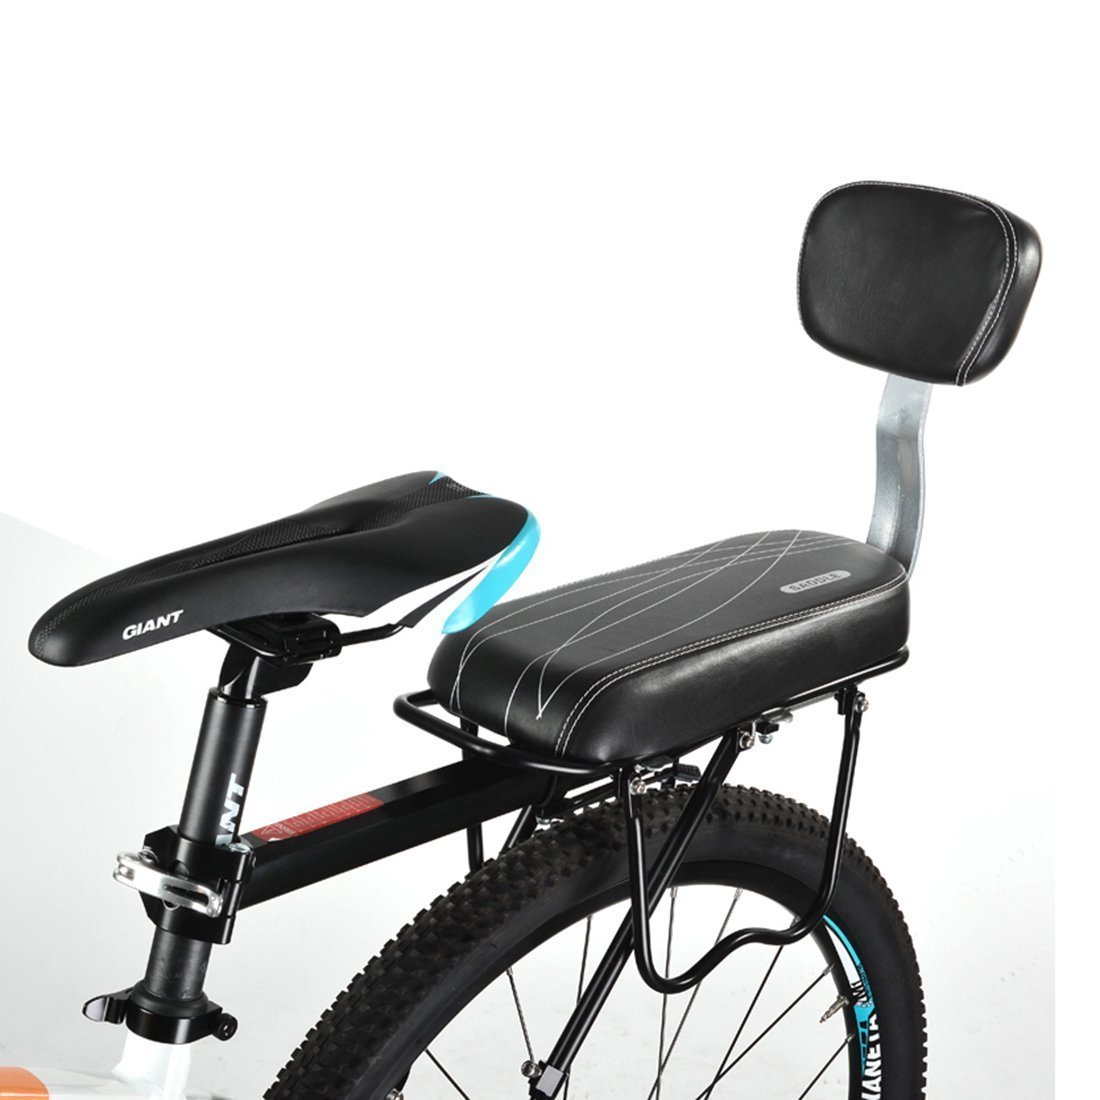 Amazon.com  Bike Seat Sanmersen PU Leather Bicycle Back Seat Cushion Child Bike Rear Rack Seat Cover Saddle With Back Rest Black with Line Pattern (Black ...  sc 1 st  Amazon.com & Amazon.com : Bike Seat Sanmersen PU Leather Bicycle Back Seat ...